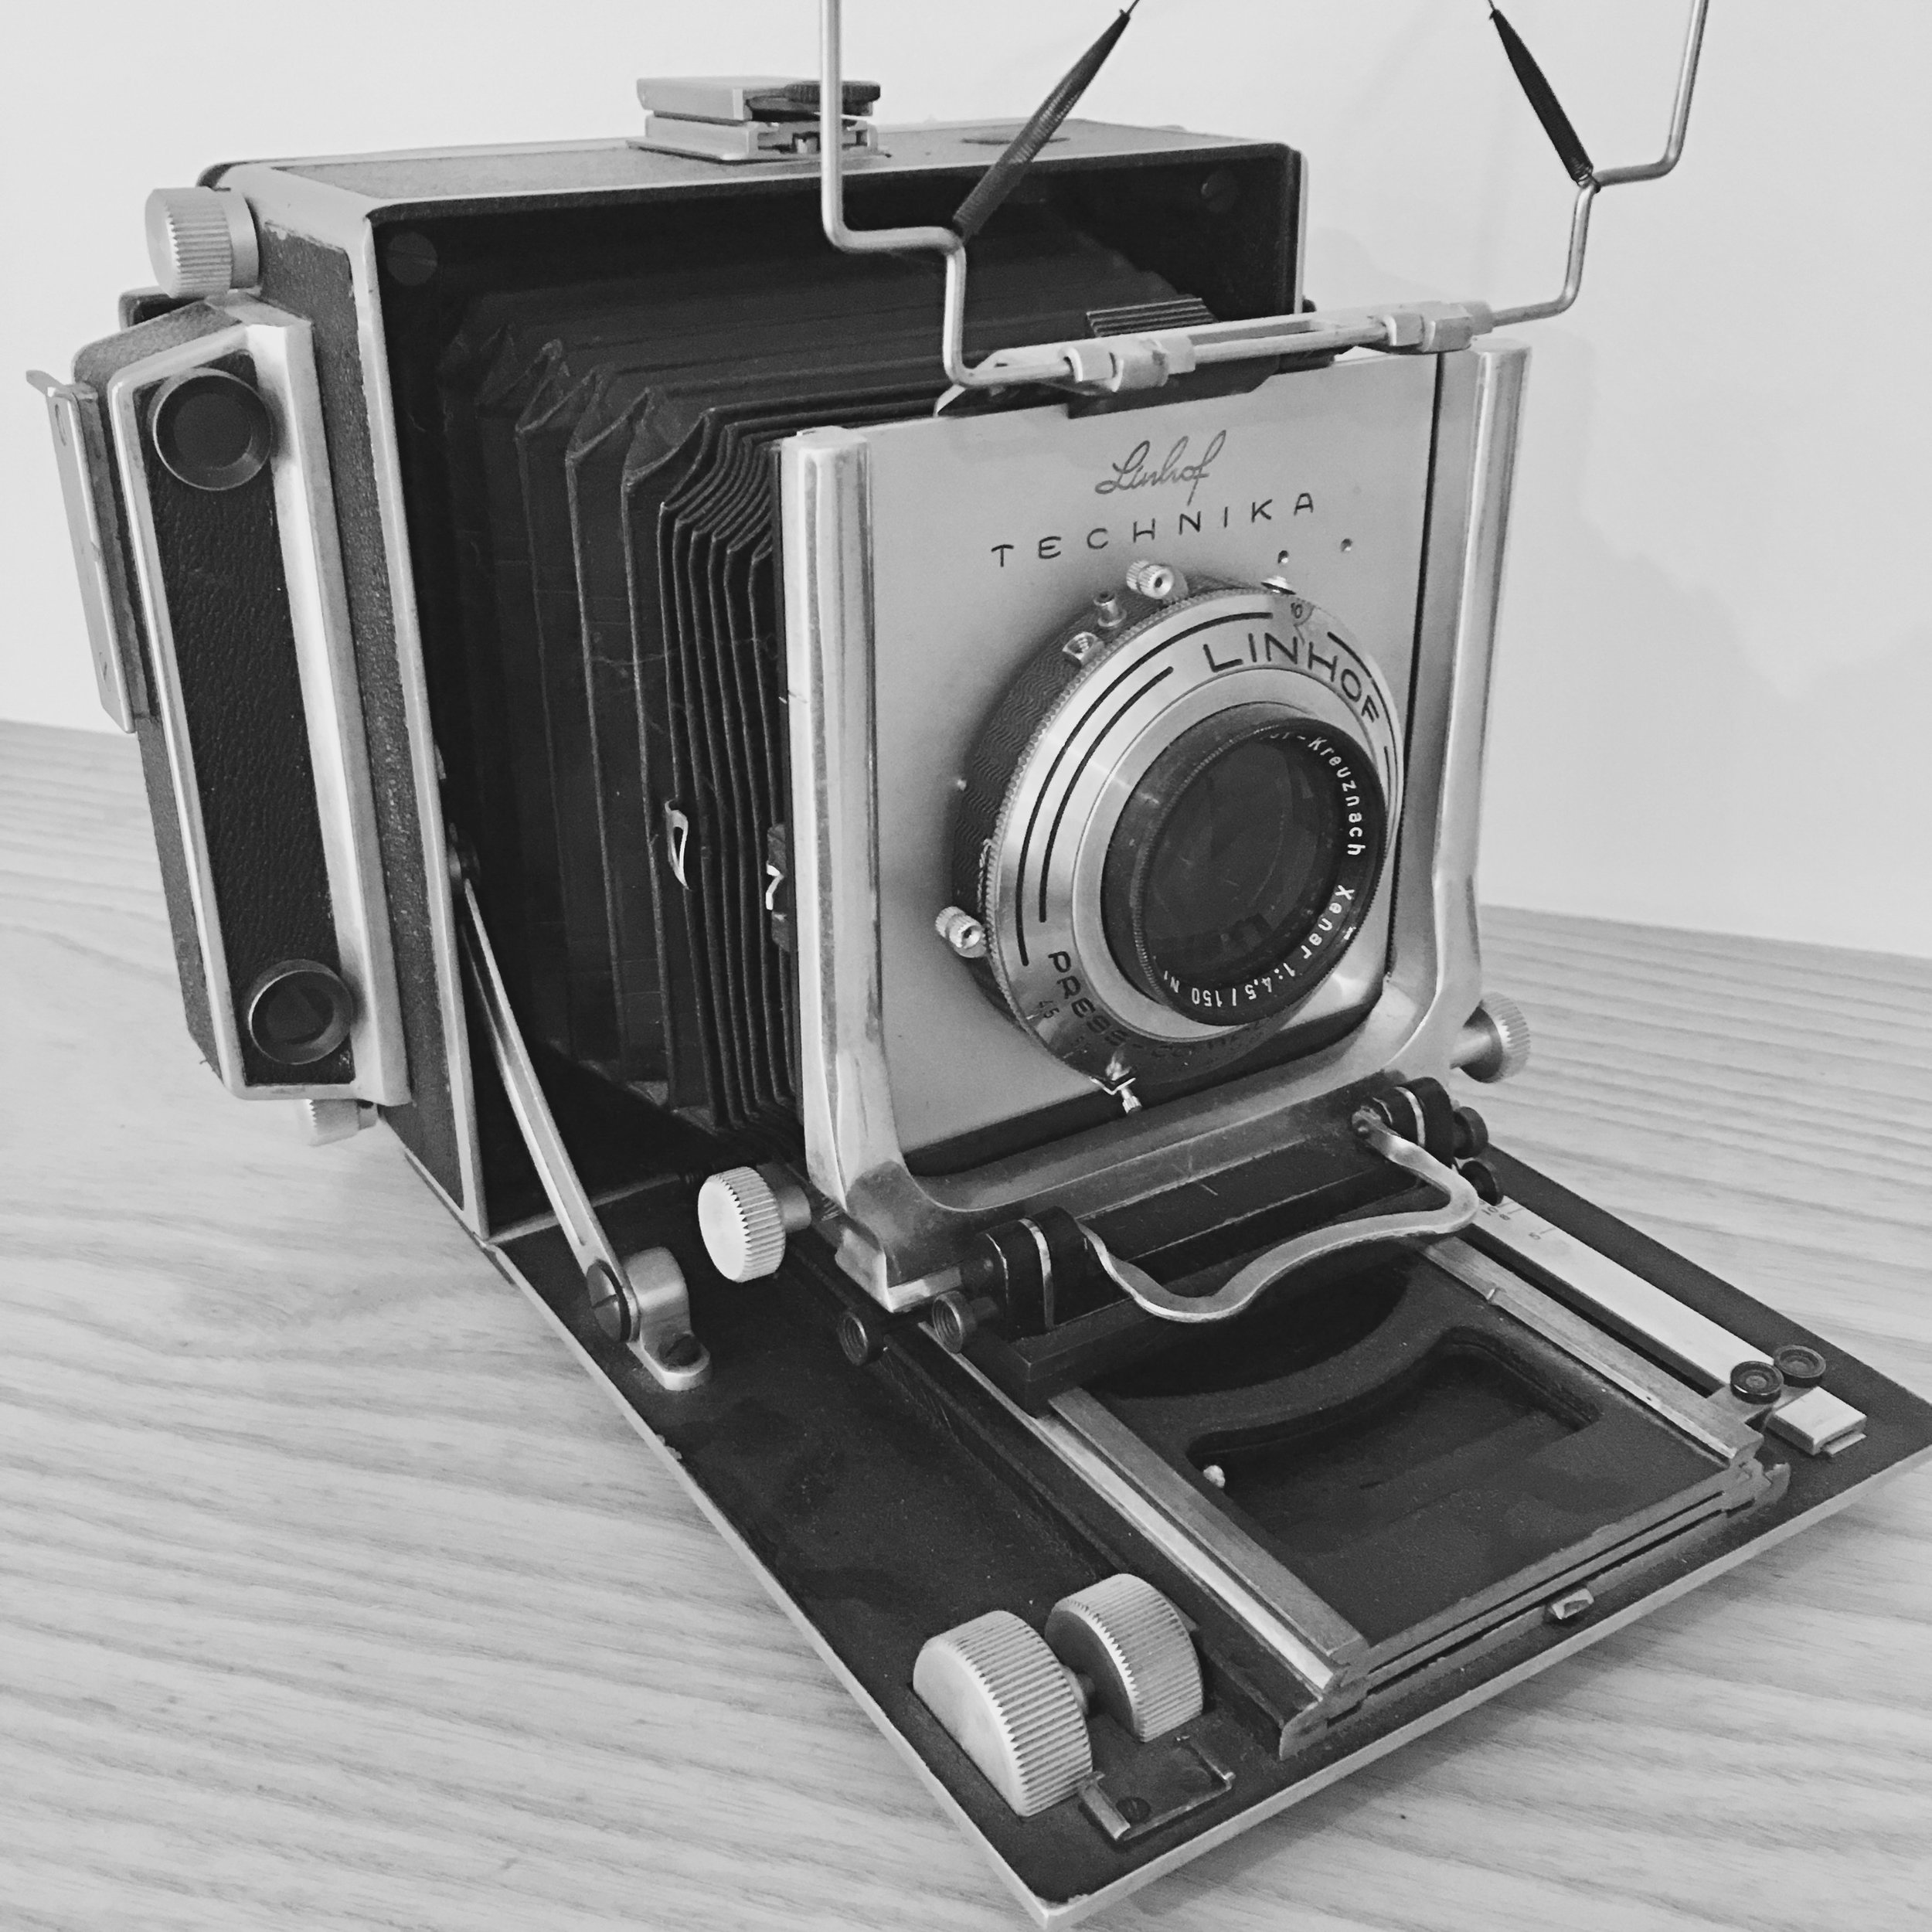 This is an early Linhof Technika from 1947. I bought it from a guy I met in Arizona for $200, and it works perfectly.